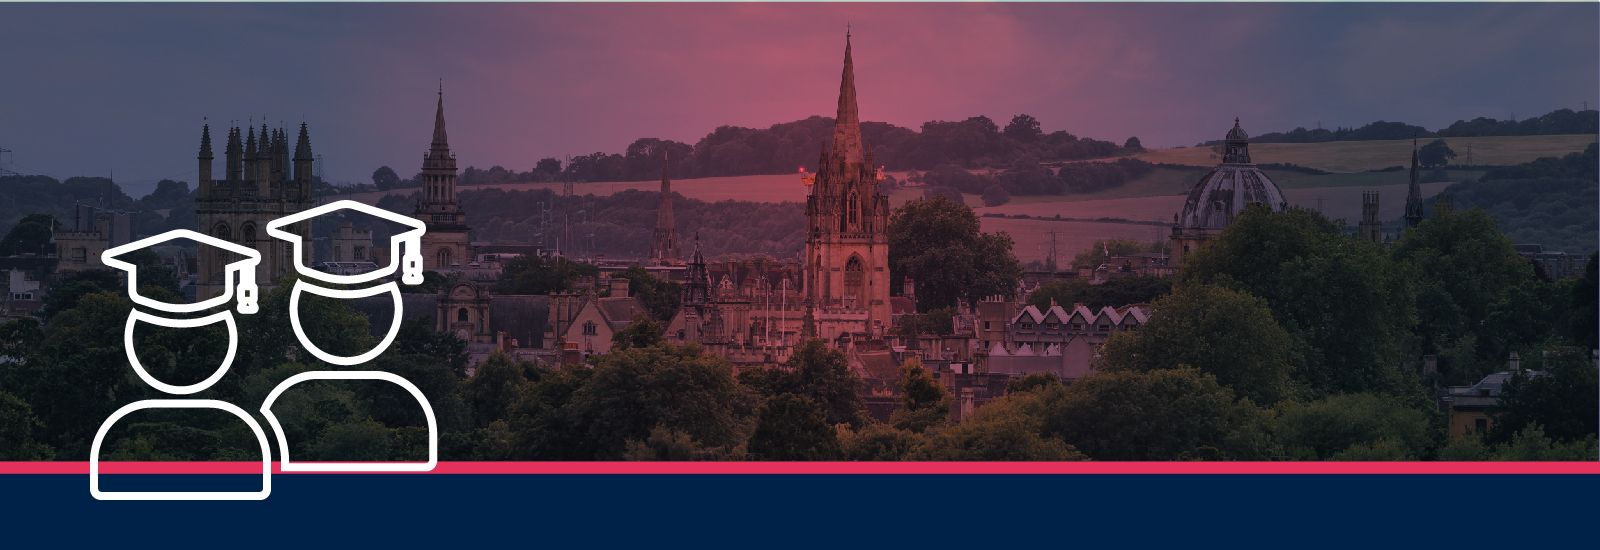 Icons of students on an image of Oxford's spires